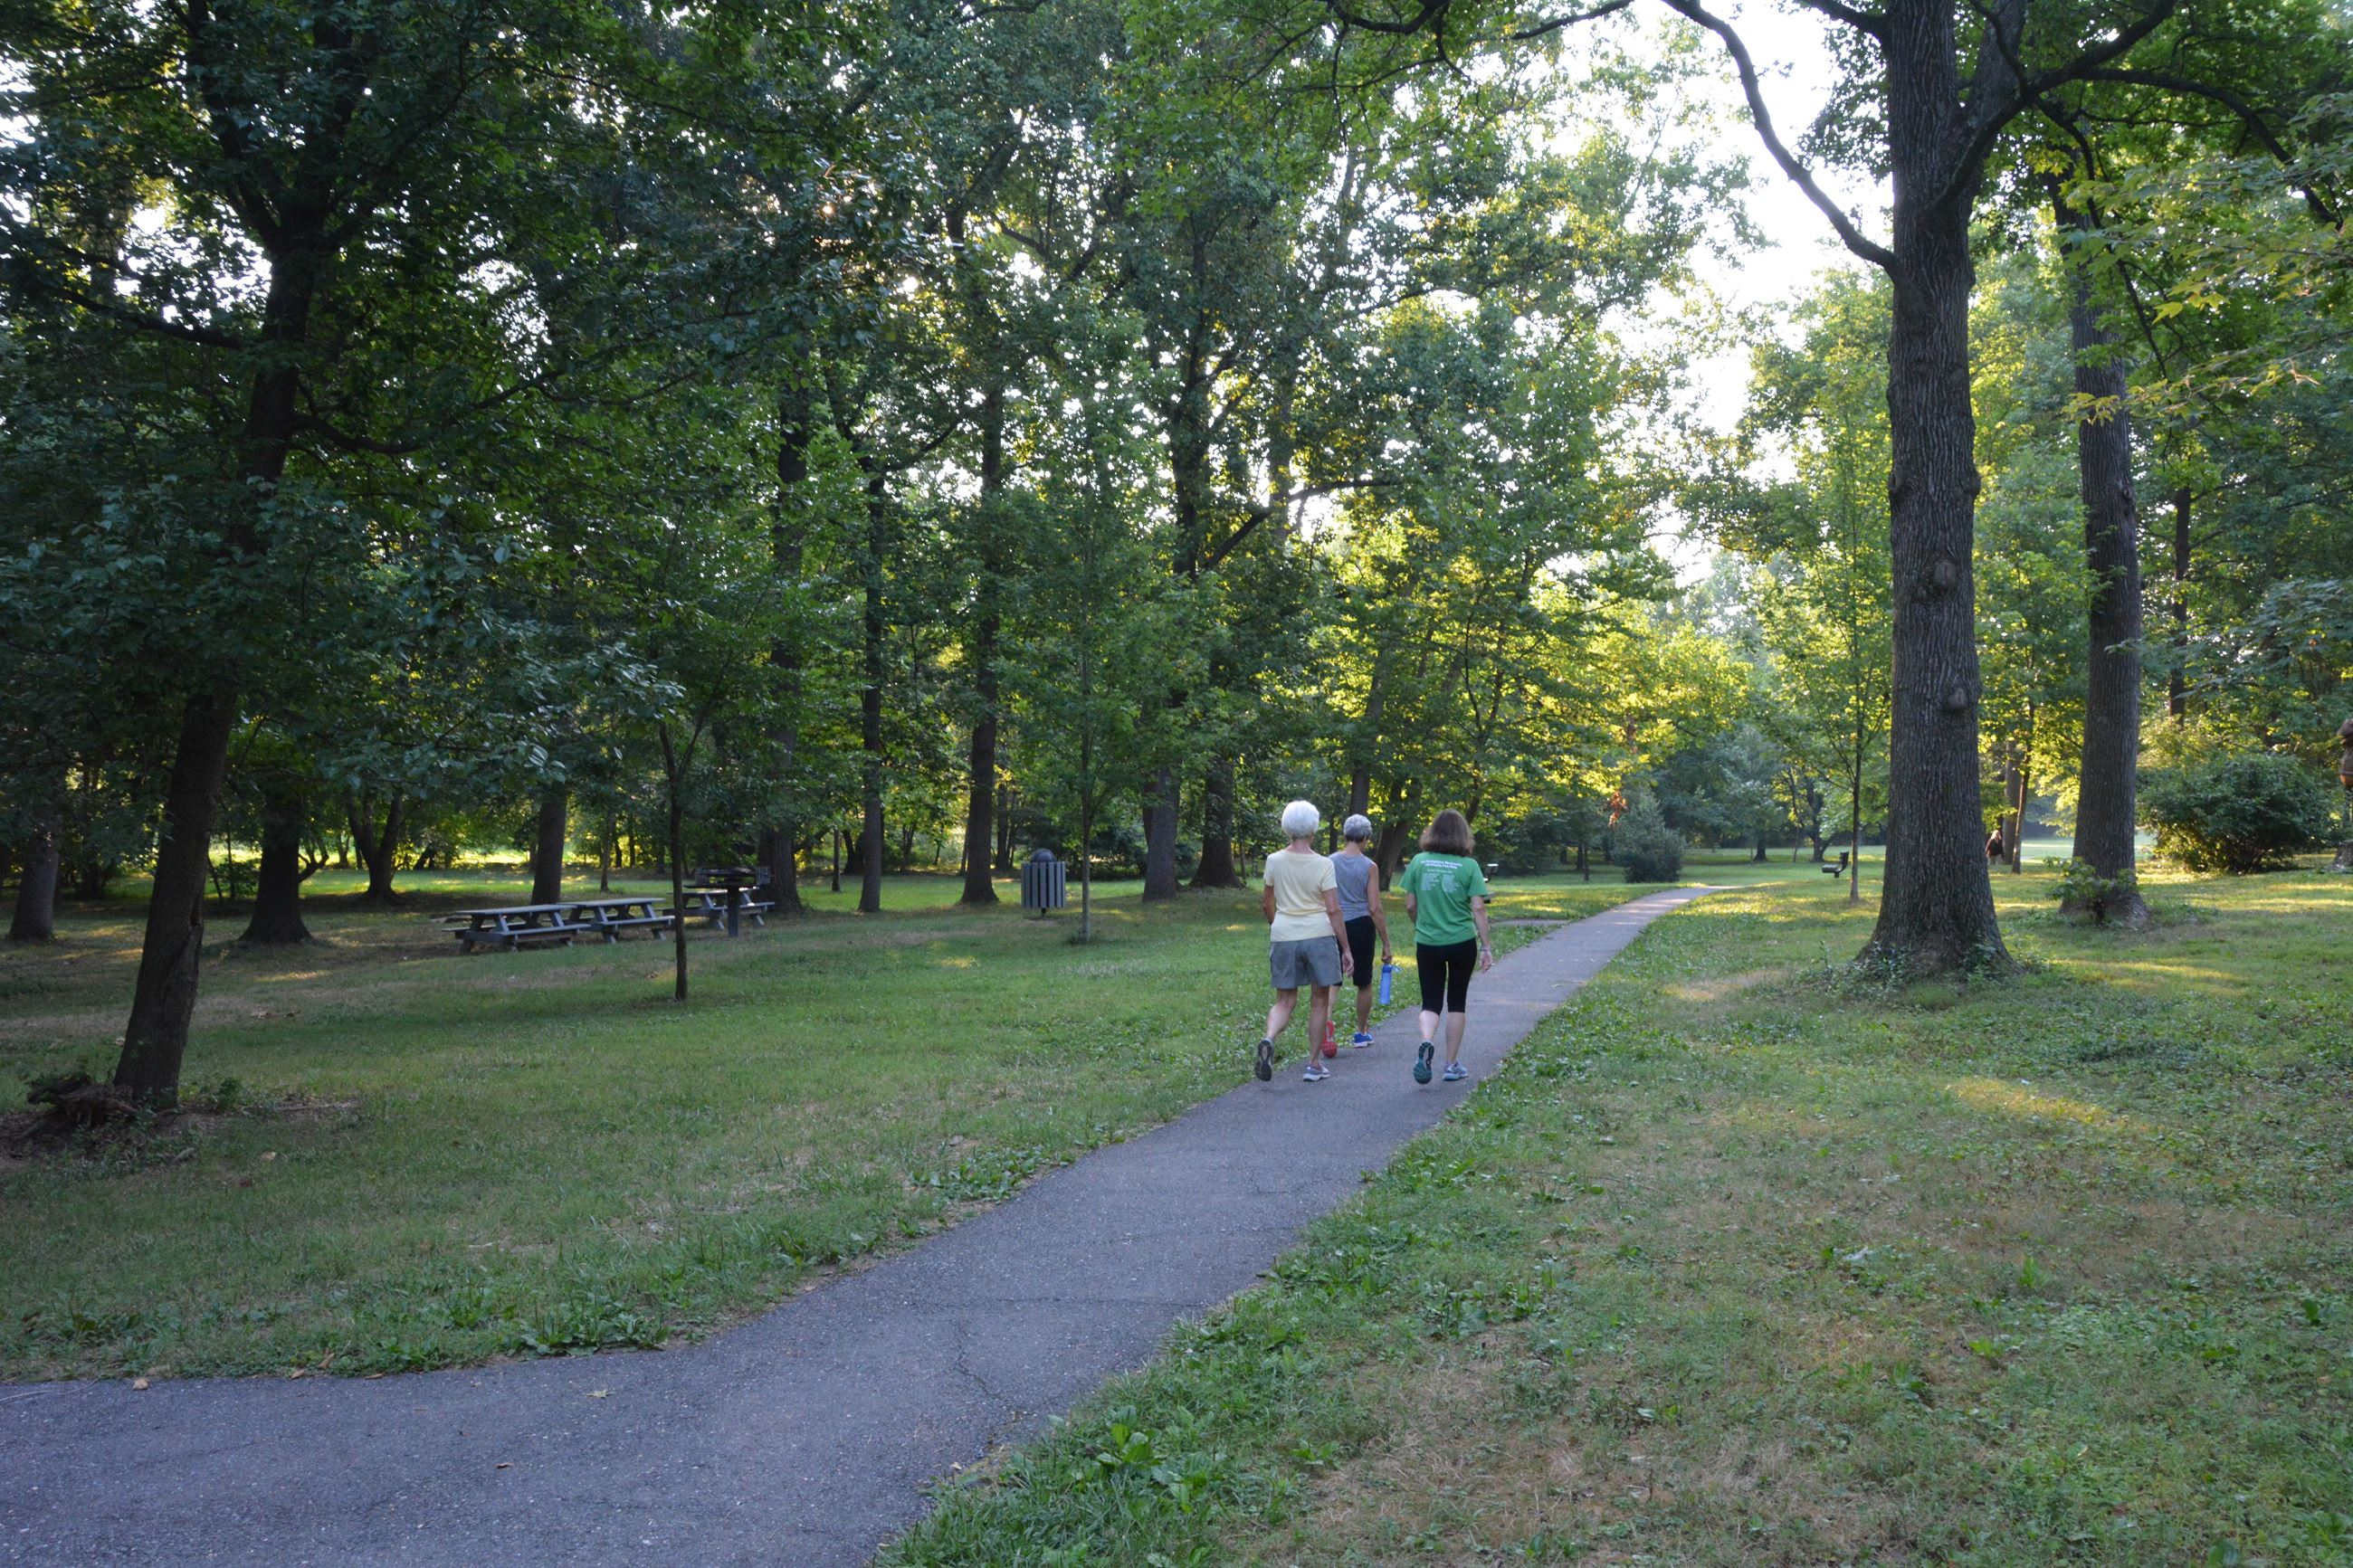 Town paved park trail with walkers